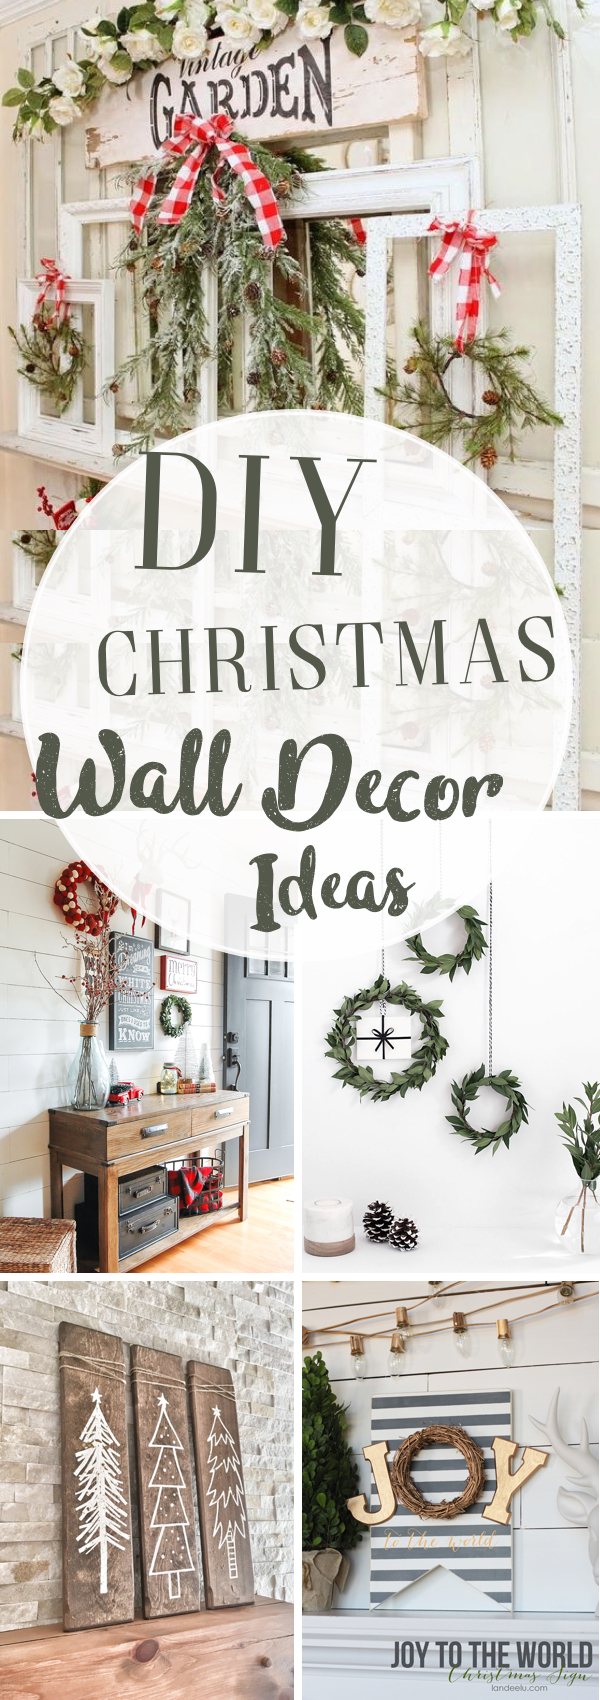 diy christmas wall decor ideas adding holiday cheers to your homes walls - Christmas Wall Decor